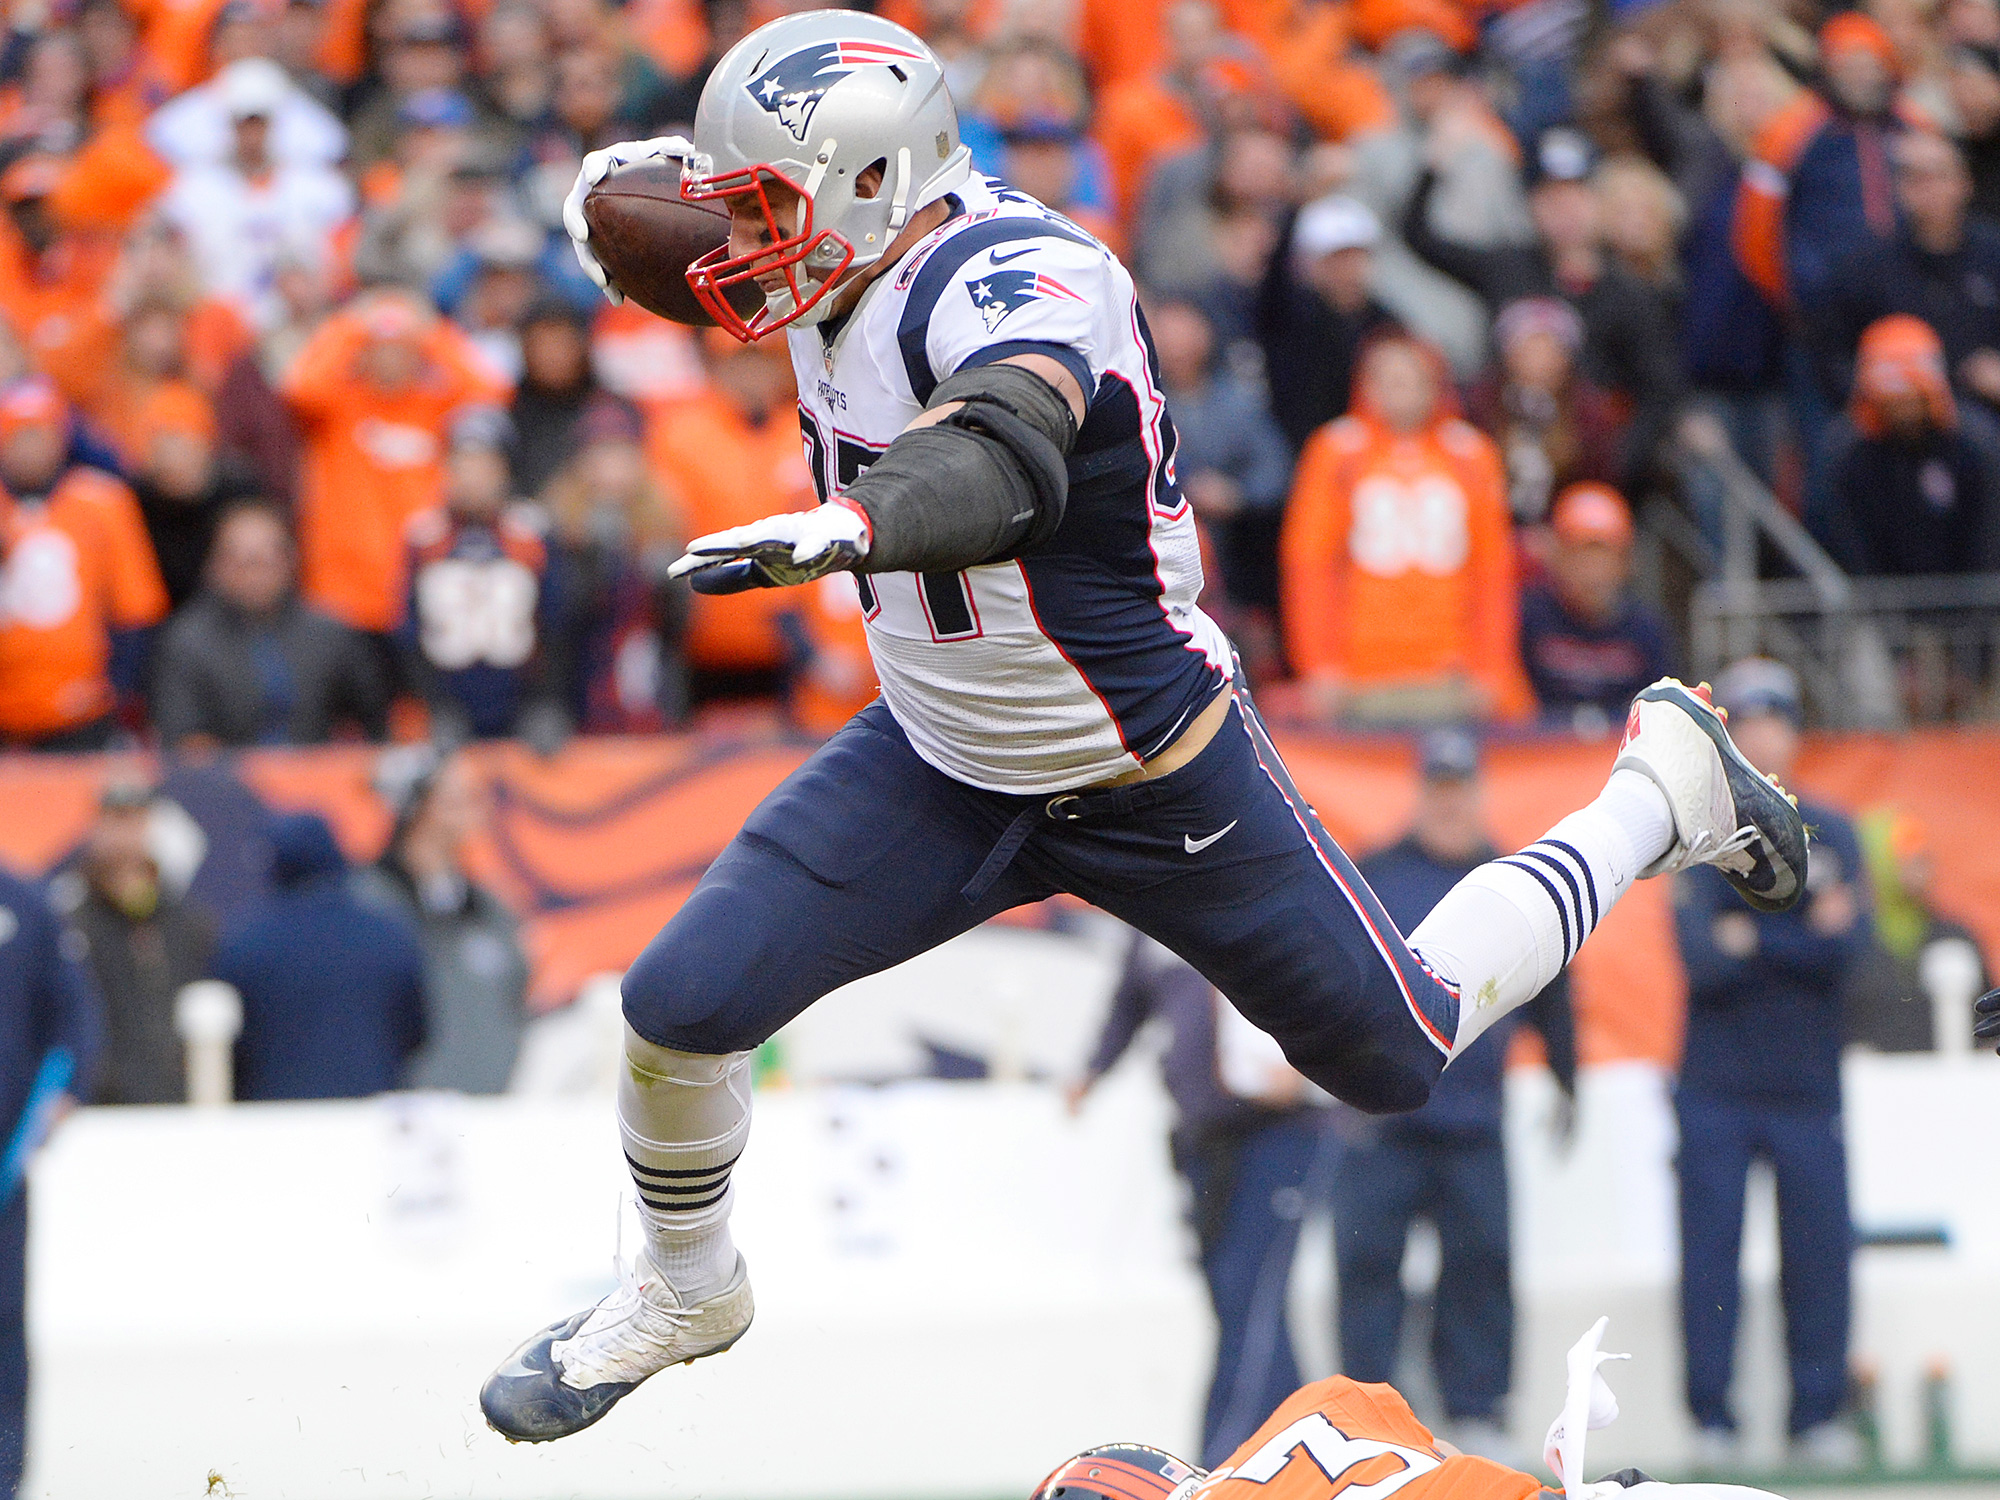 Fantasy tight end primer: Rob Gronkowski